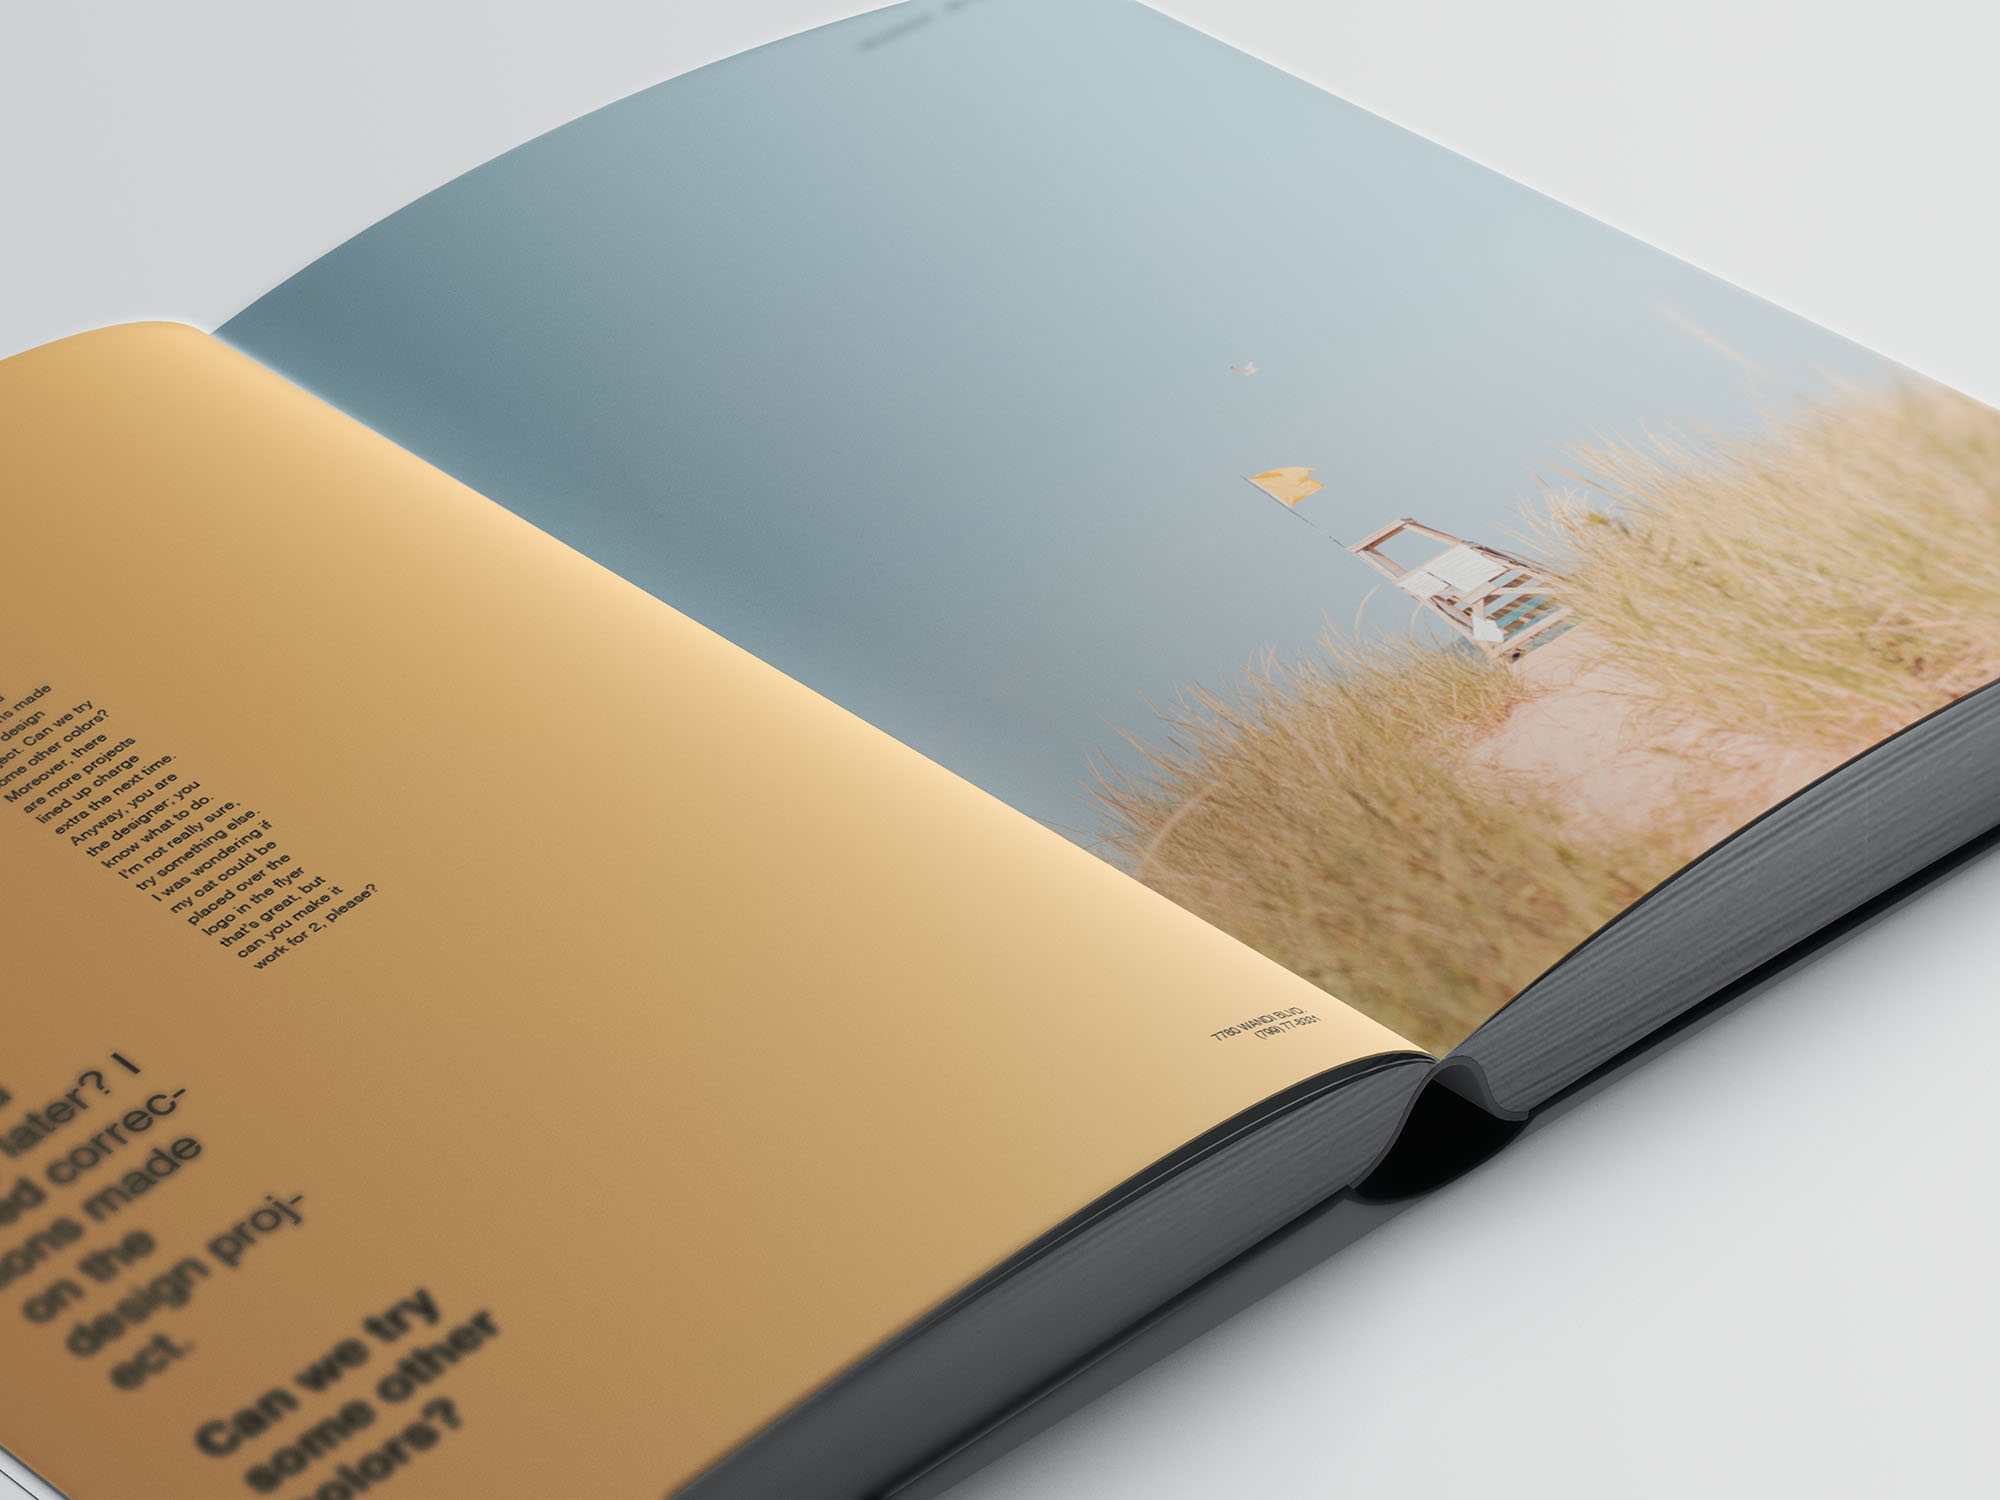 Hardcover A4 Book Mockup 10